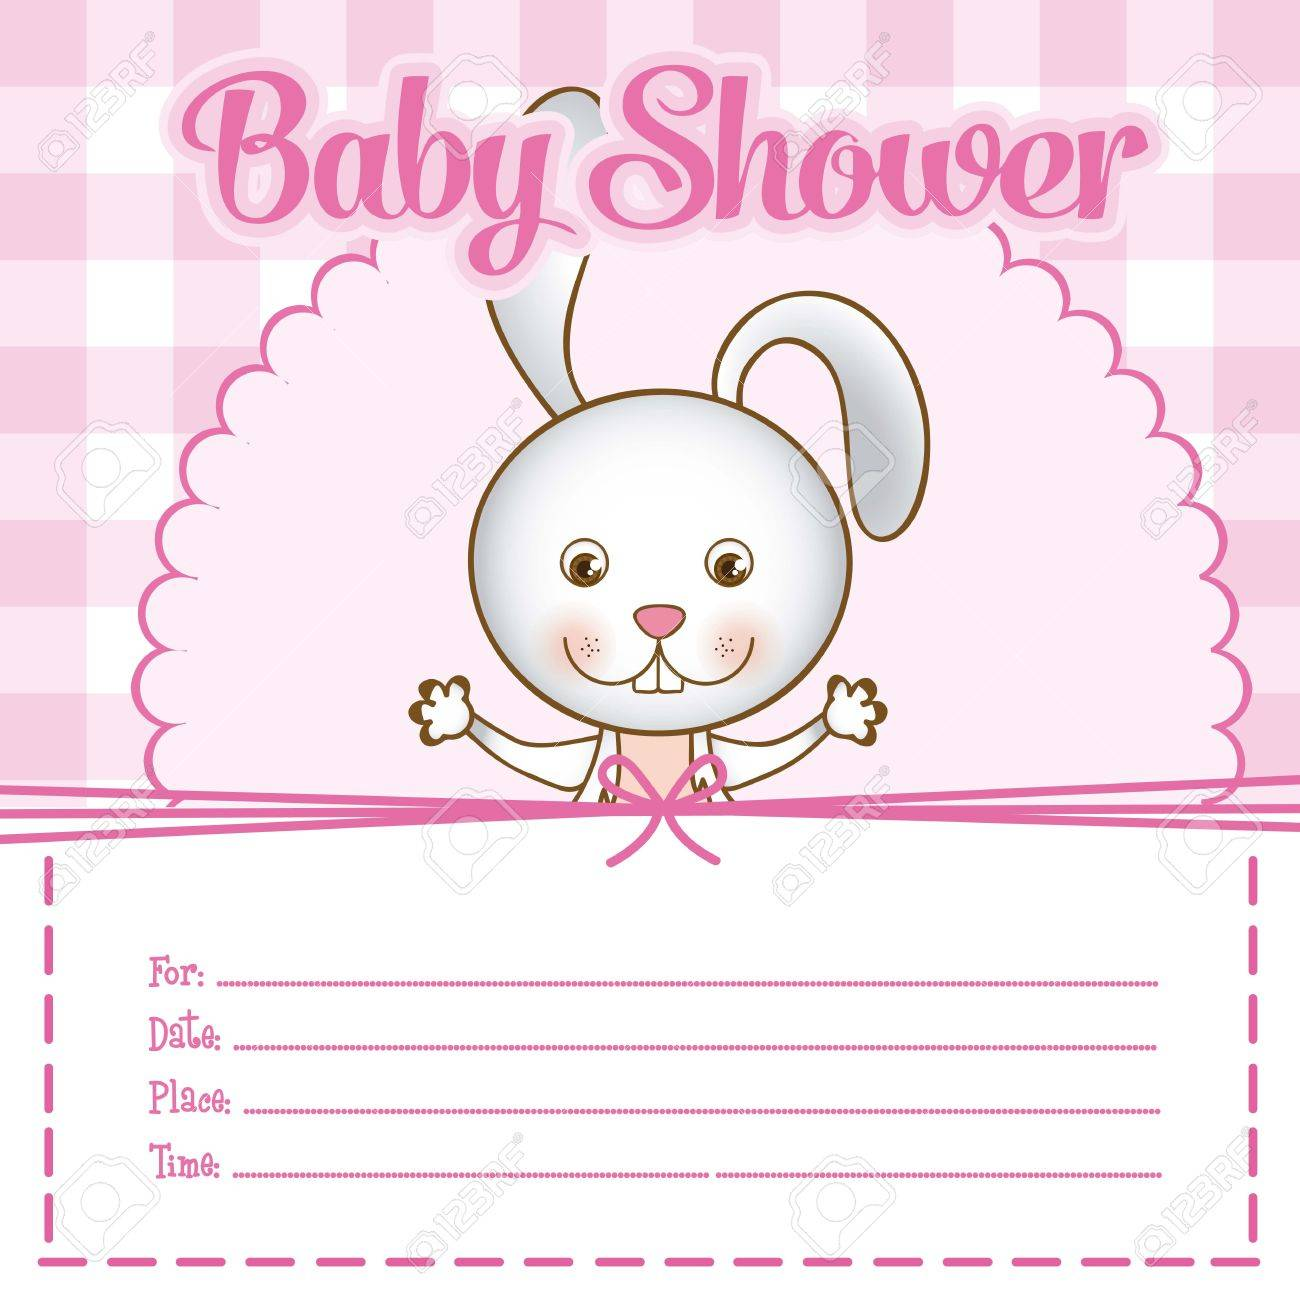 Illustration Of Baby Shower Invitation With A Cute Bunny. Vector ...